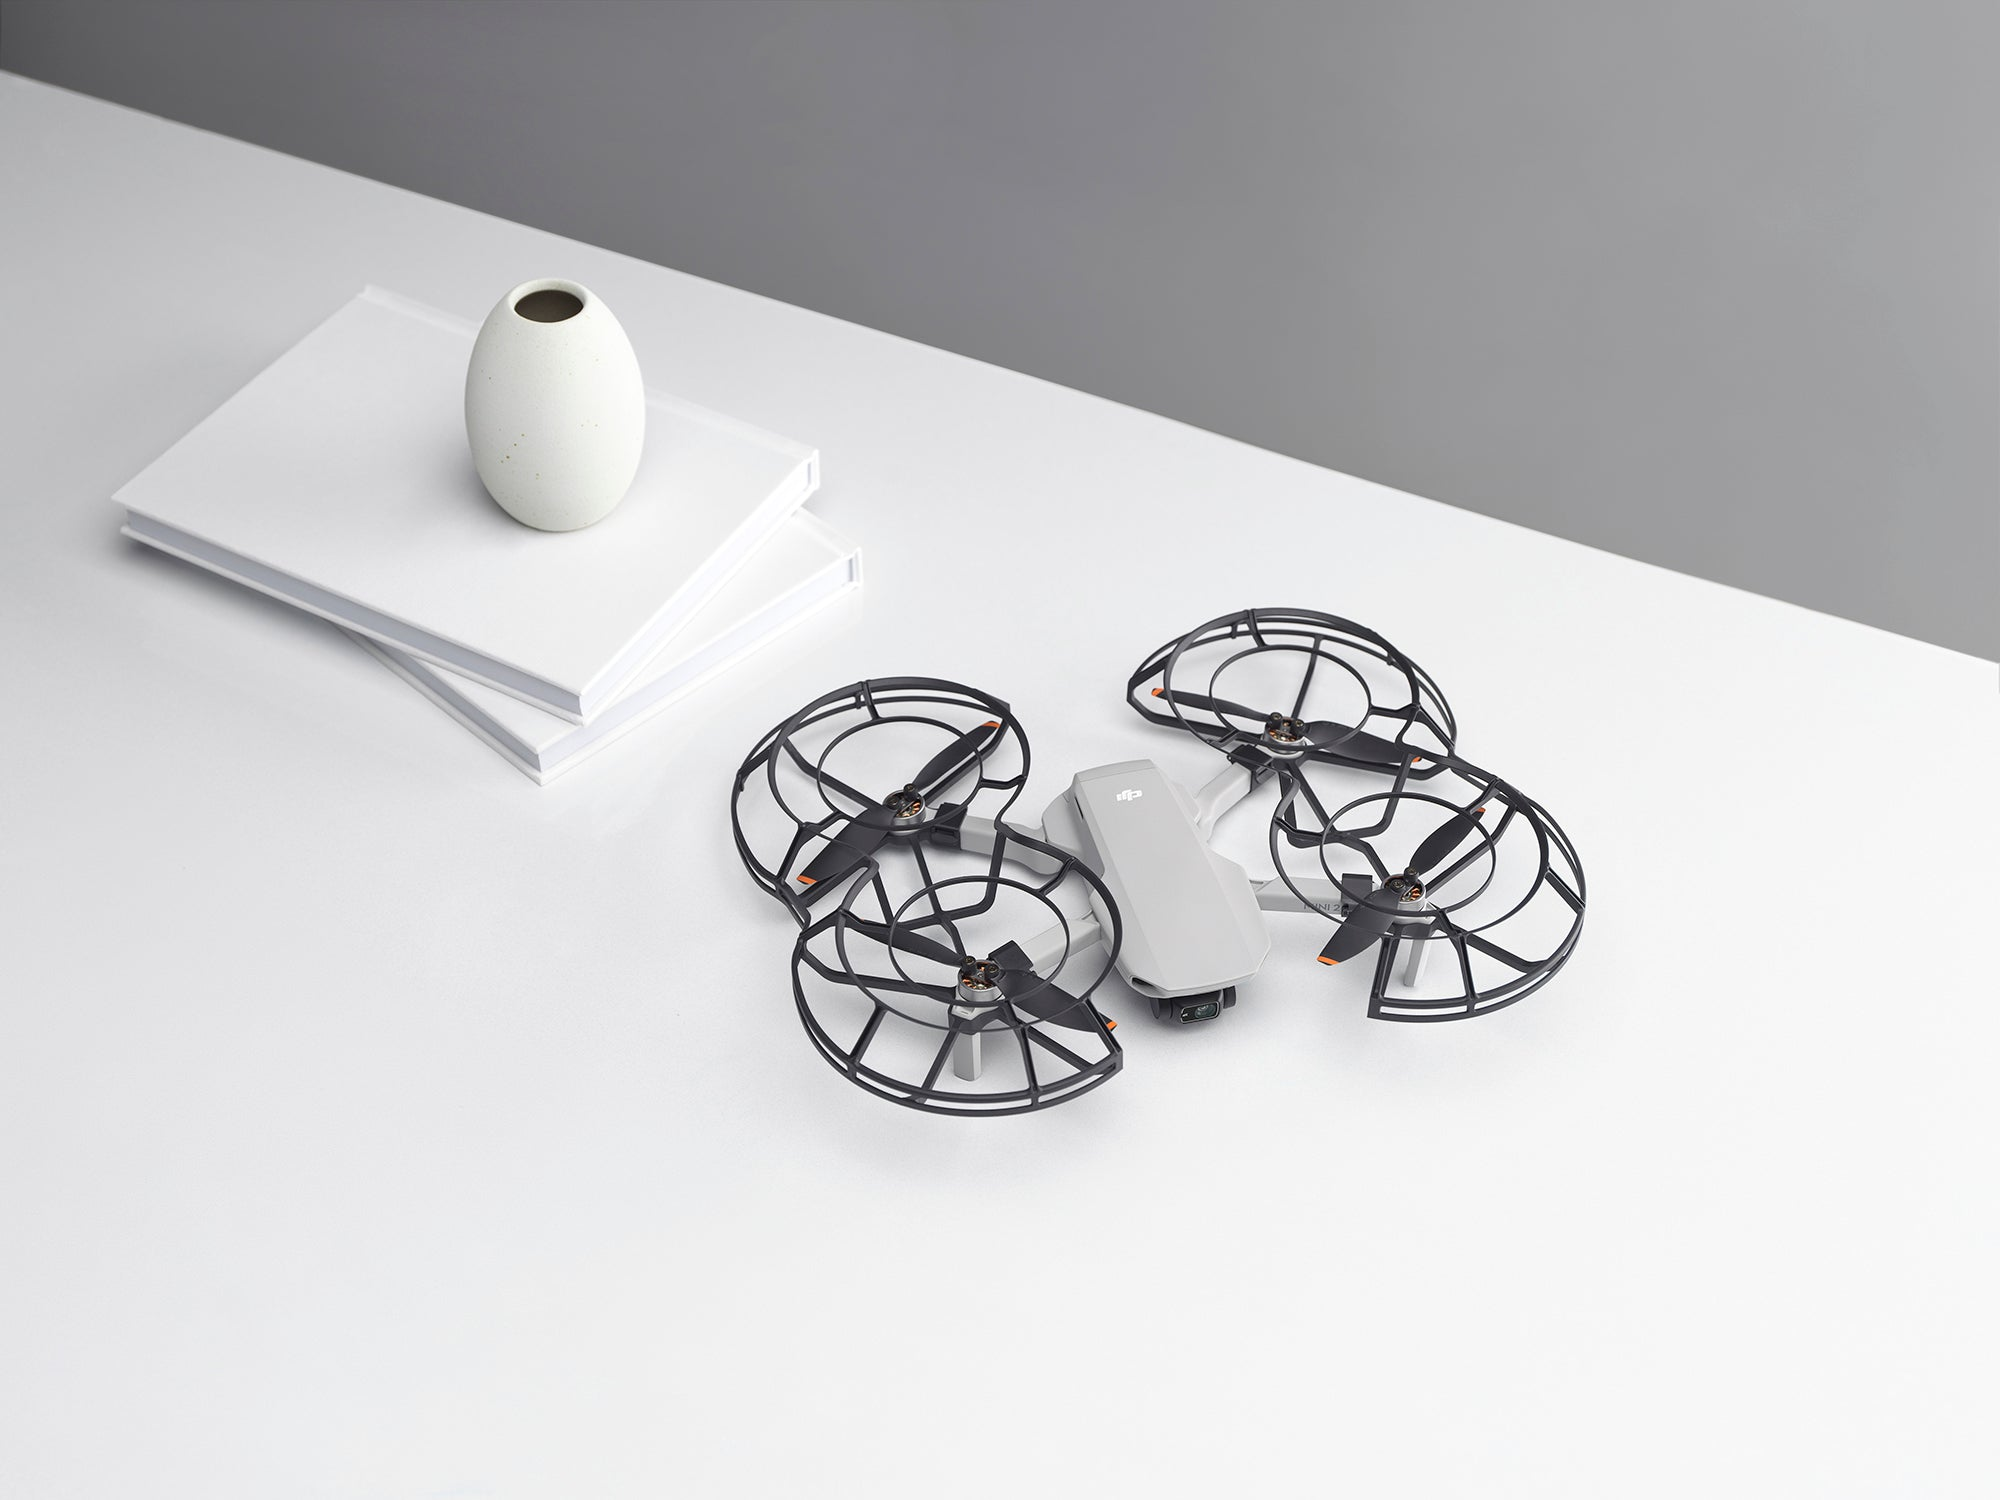 DJI Mini 2 Propeller Guards 360°